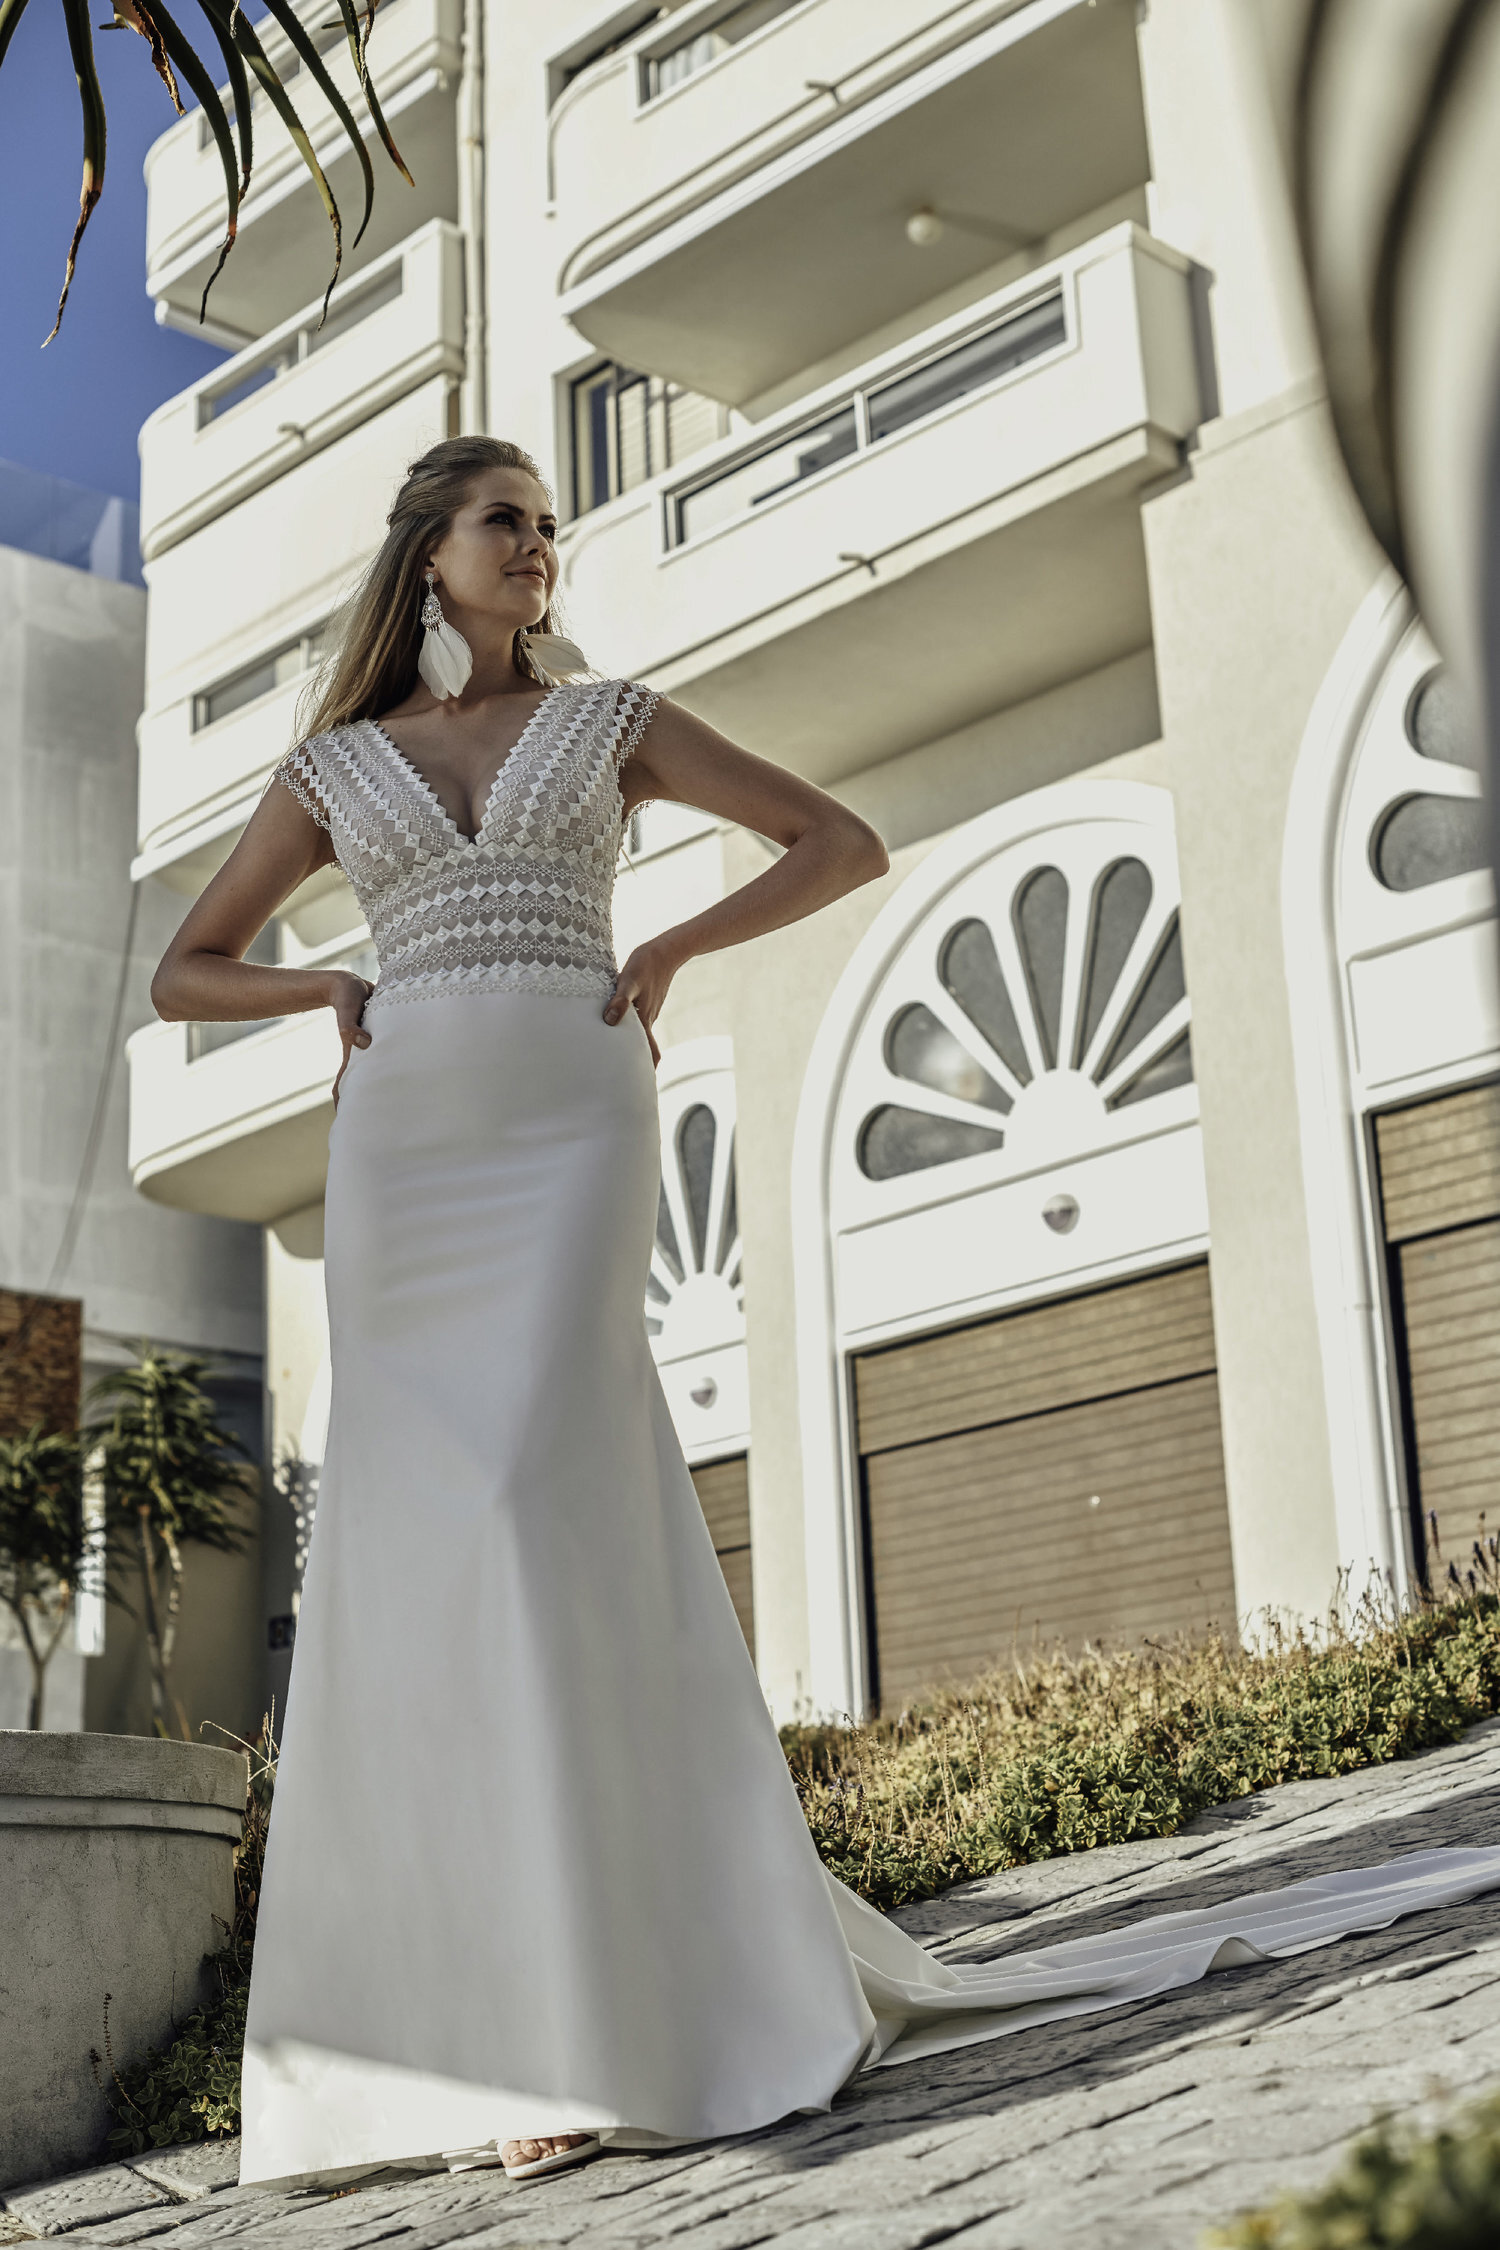 brunia - The Brunia Gown is a modern bride's dream. Pearl beading adds a soft shine to the macrame lace bodice, and the dropped waistline creates a slimming look. The white satin skirt is designed for optimal comfort and movement, whilst maintaining a clean elegance.